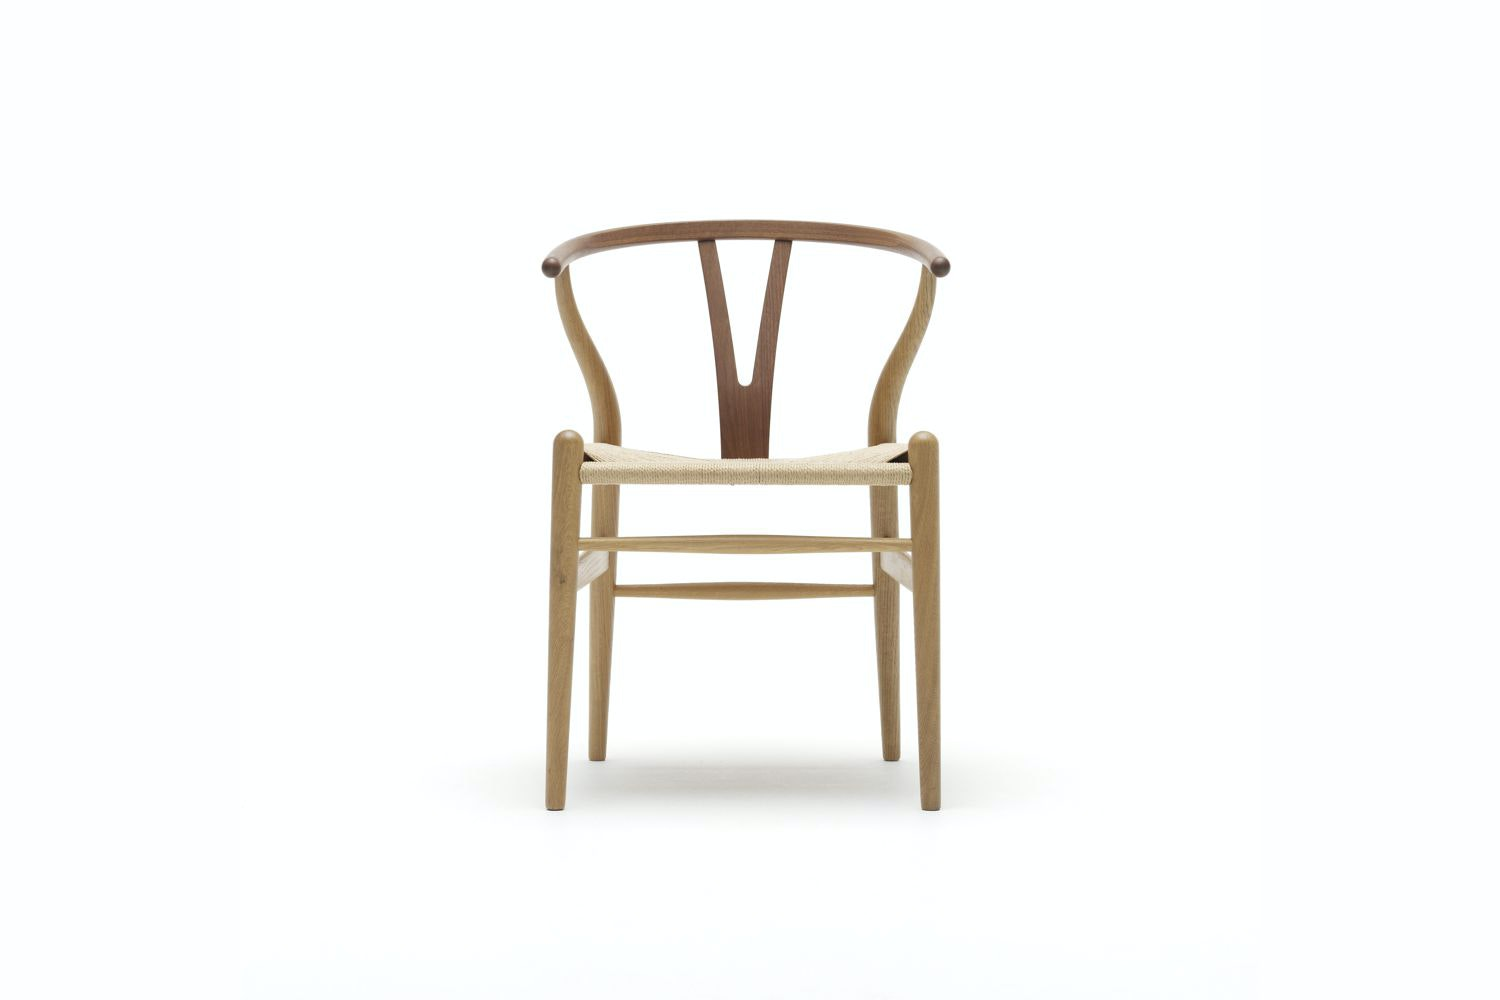 CH24 Wishbone Chair Mix by Hans J. Wegner for Carl Hansen & Son